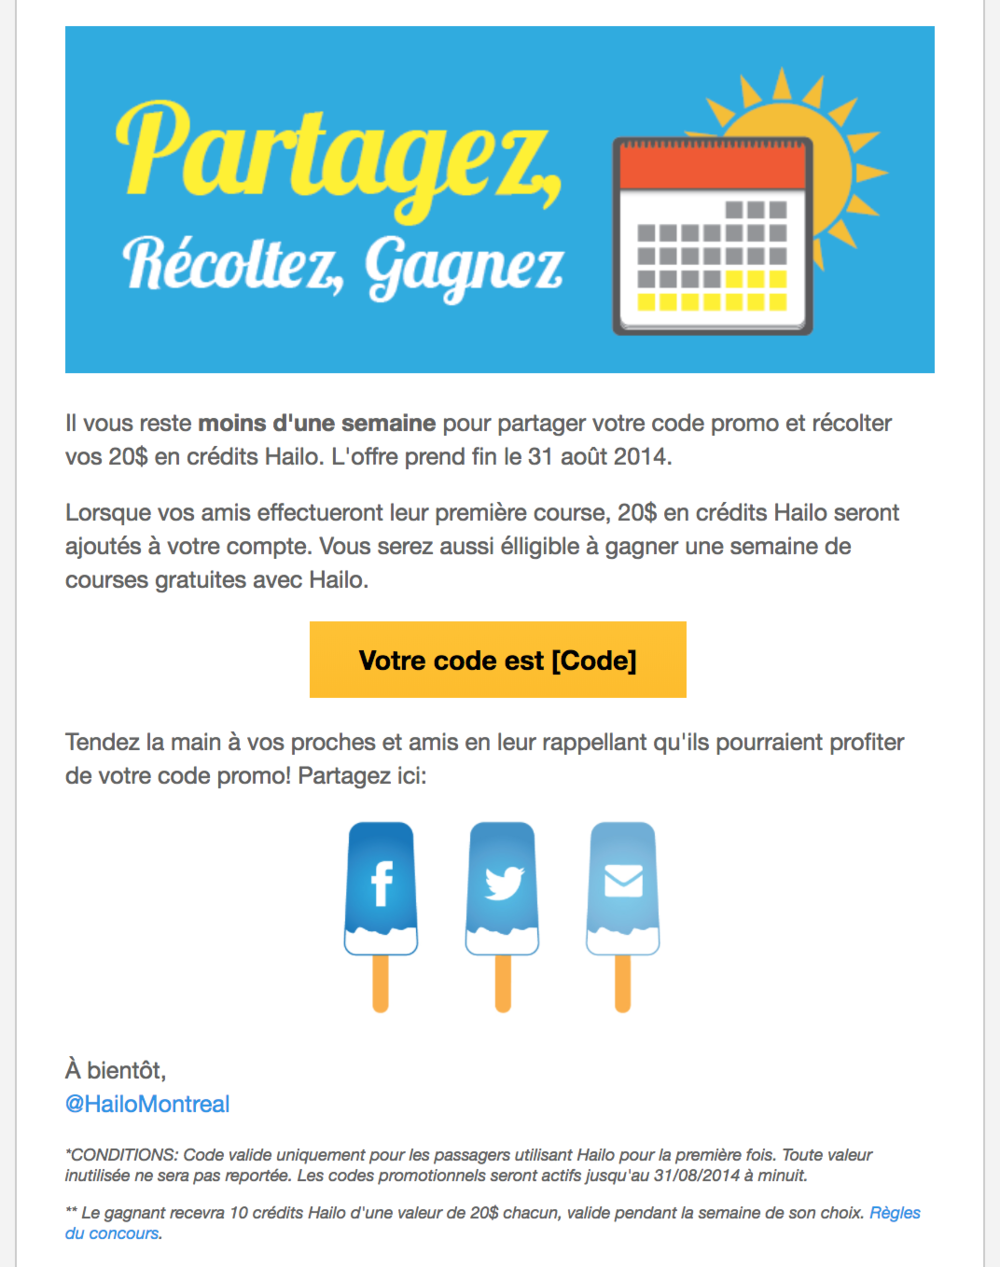 Montreal reminder email (customer segments pulled based on French vs. English preference in the app)